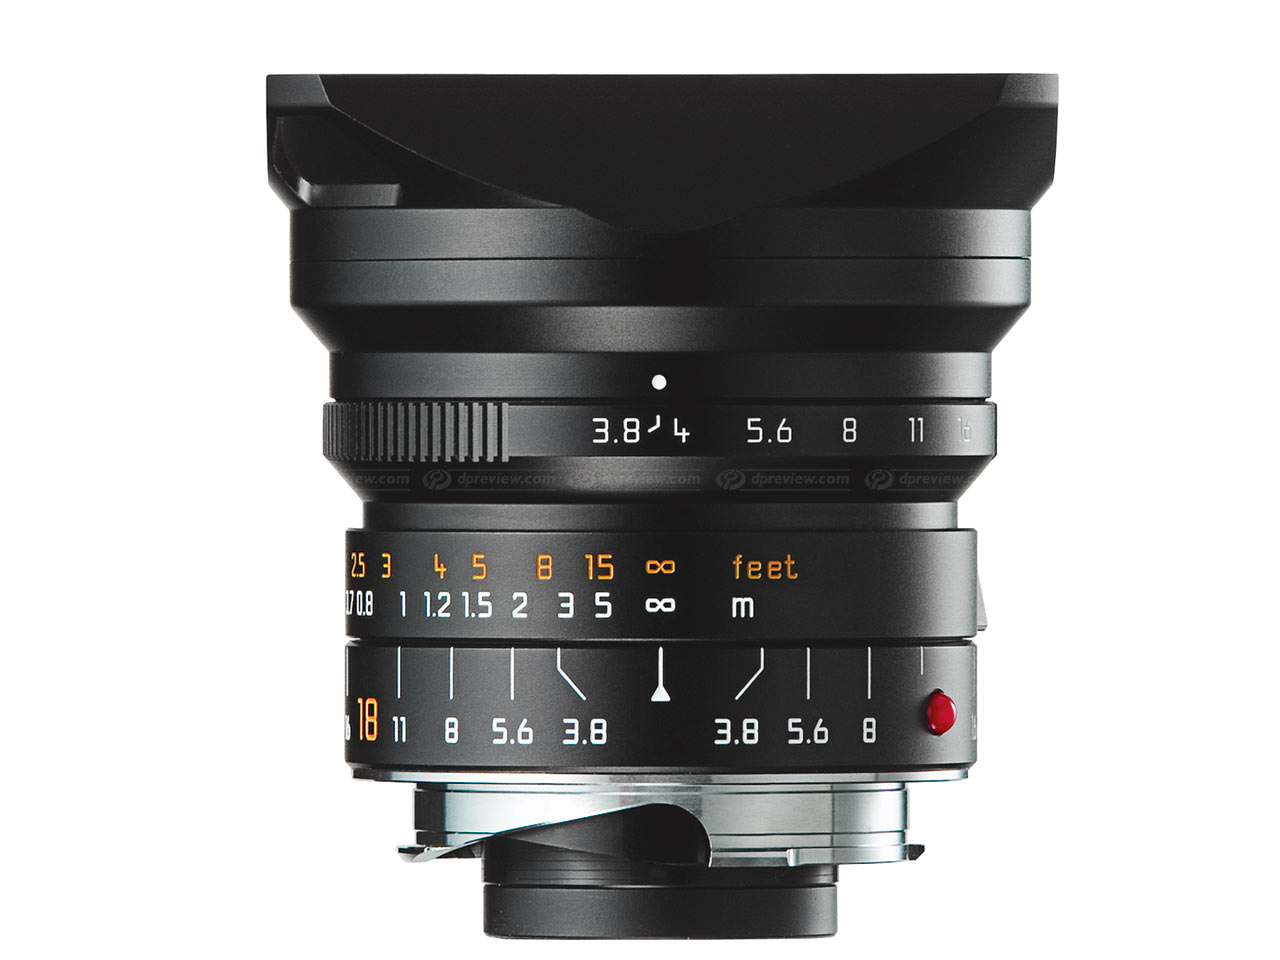 Leica launches Super-Elmar-M 18 mm lens: Digital Photography